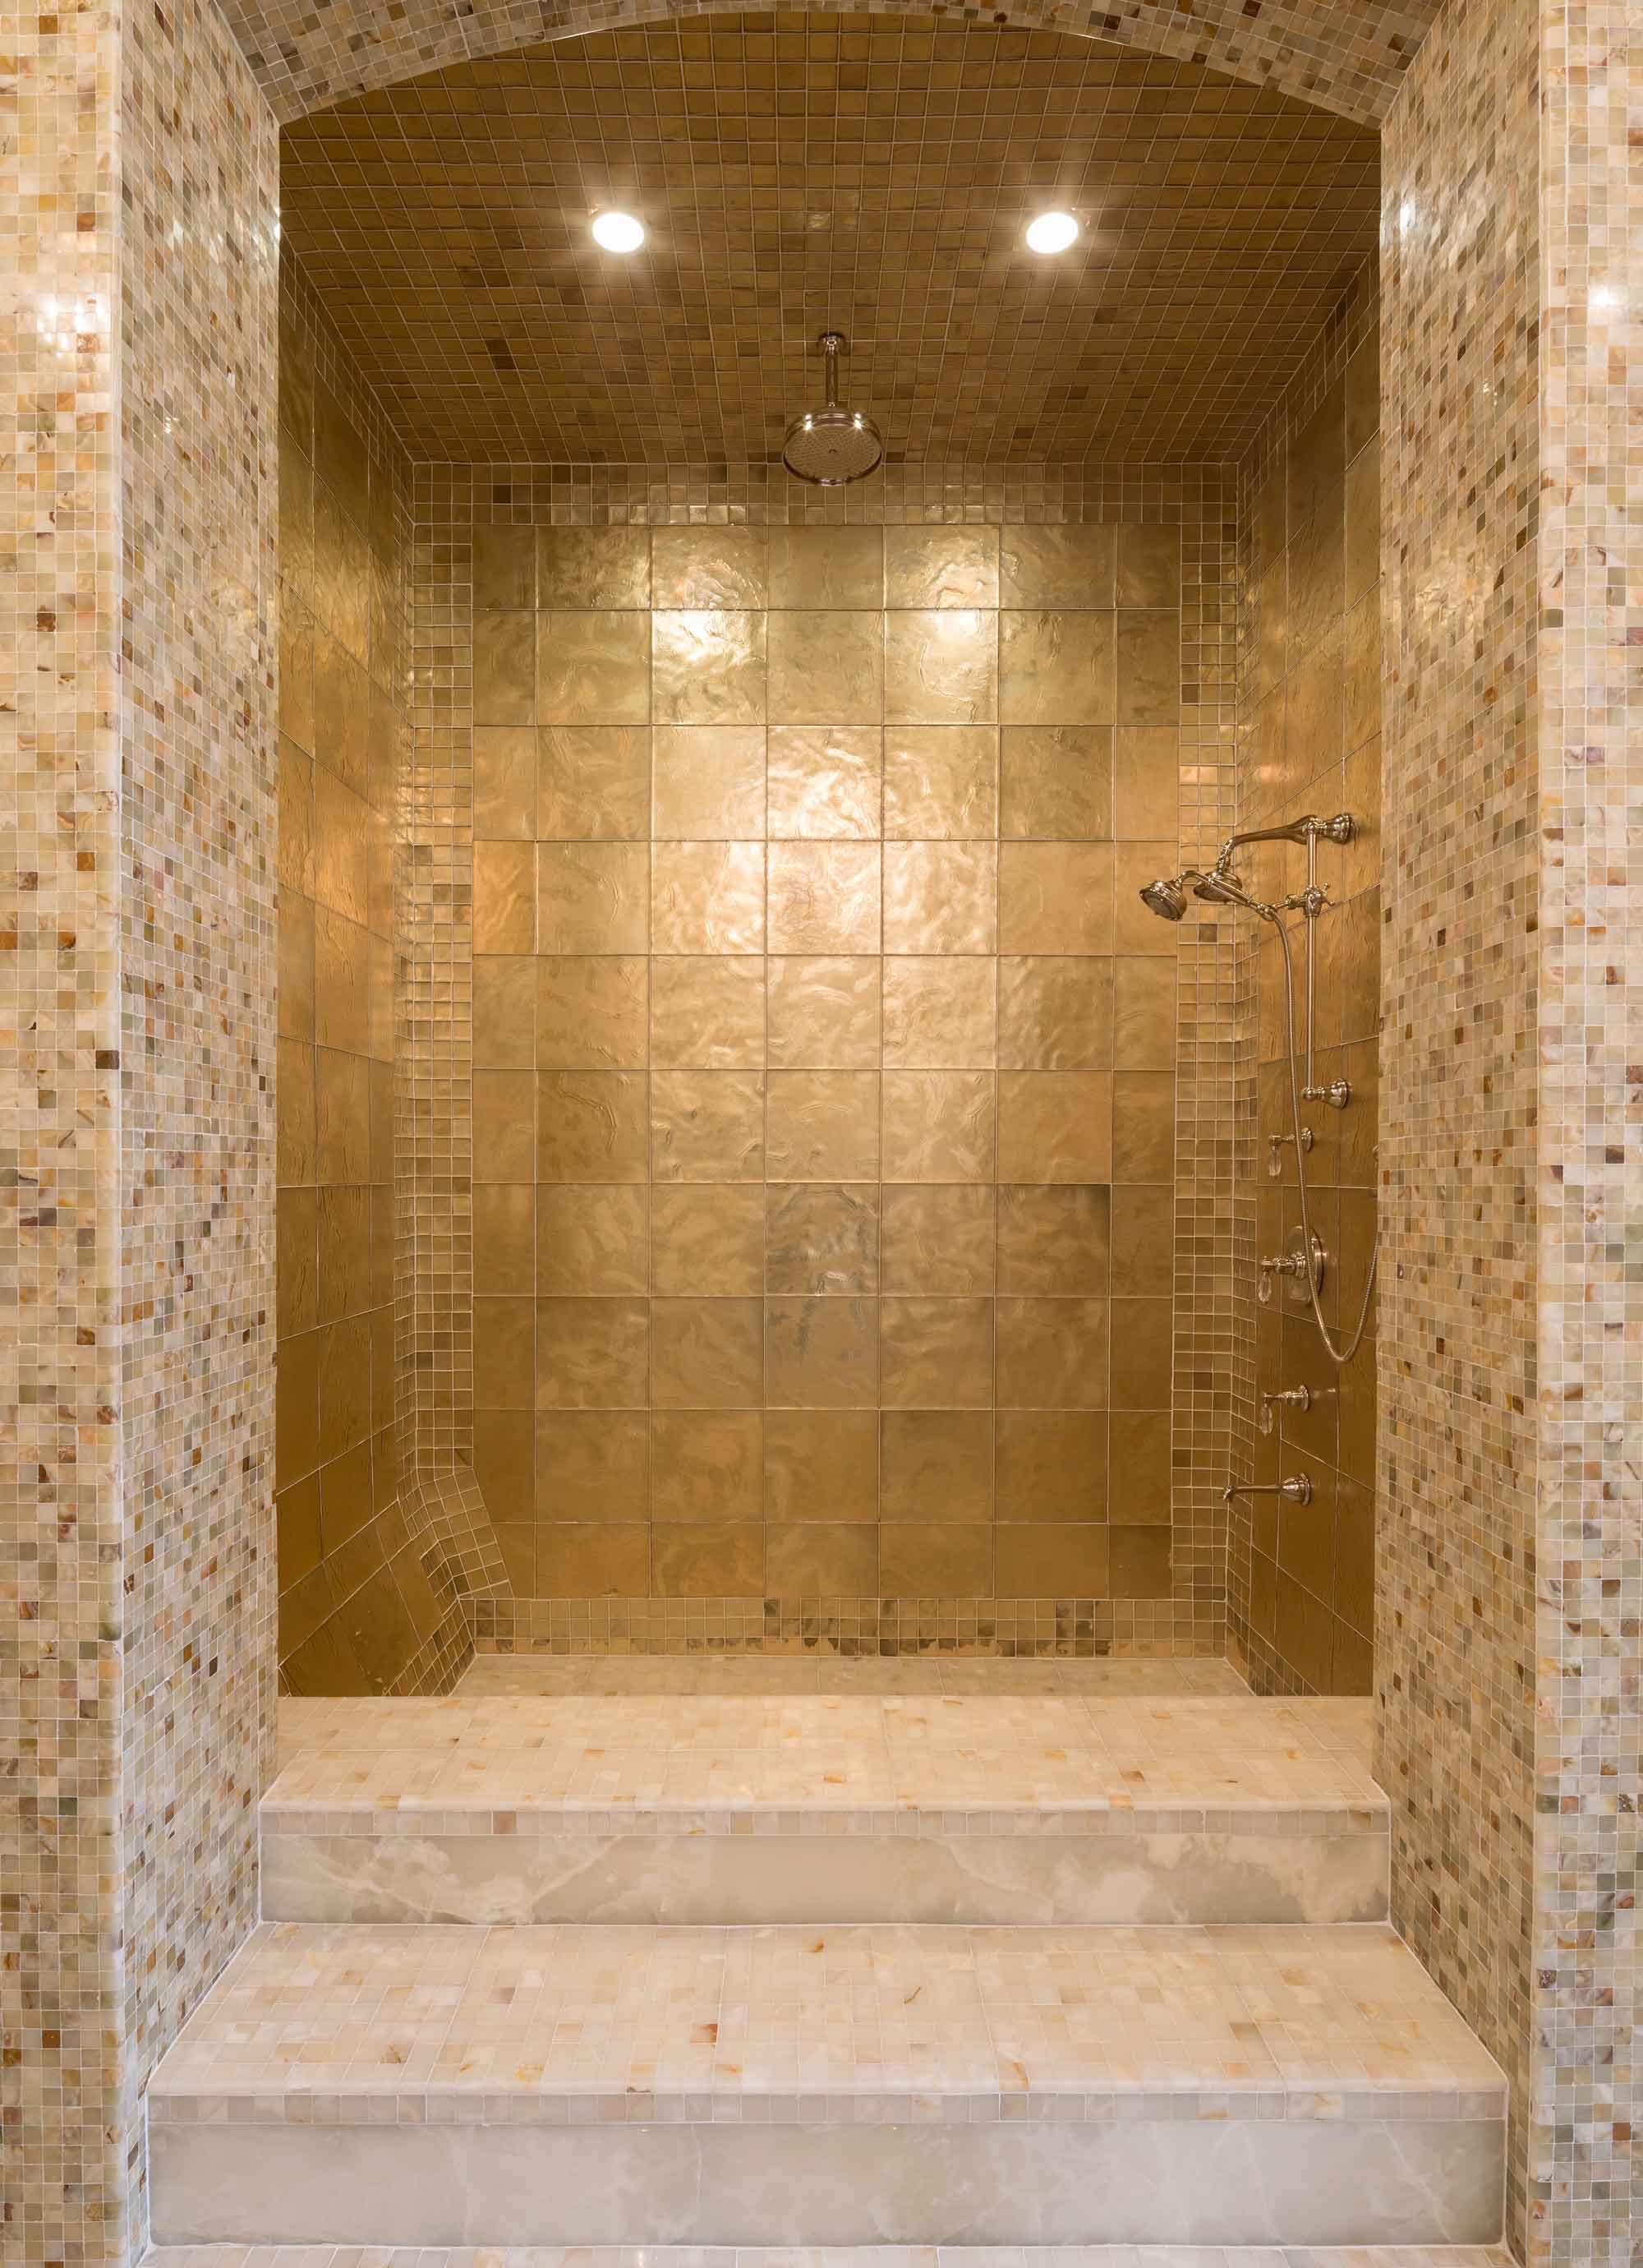 The centerpiece of the master bathroom is a monumental double-height, multi-jet steam shower, finished with beautiful gold marble and mosaic tile.